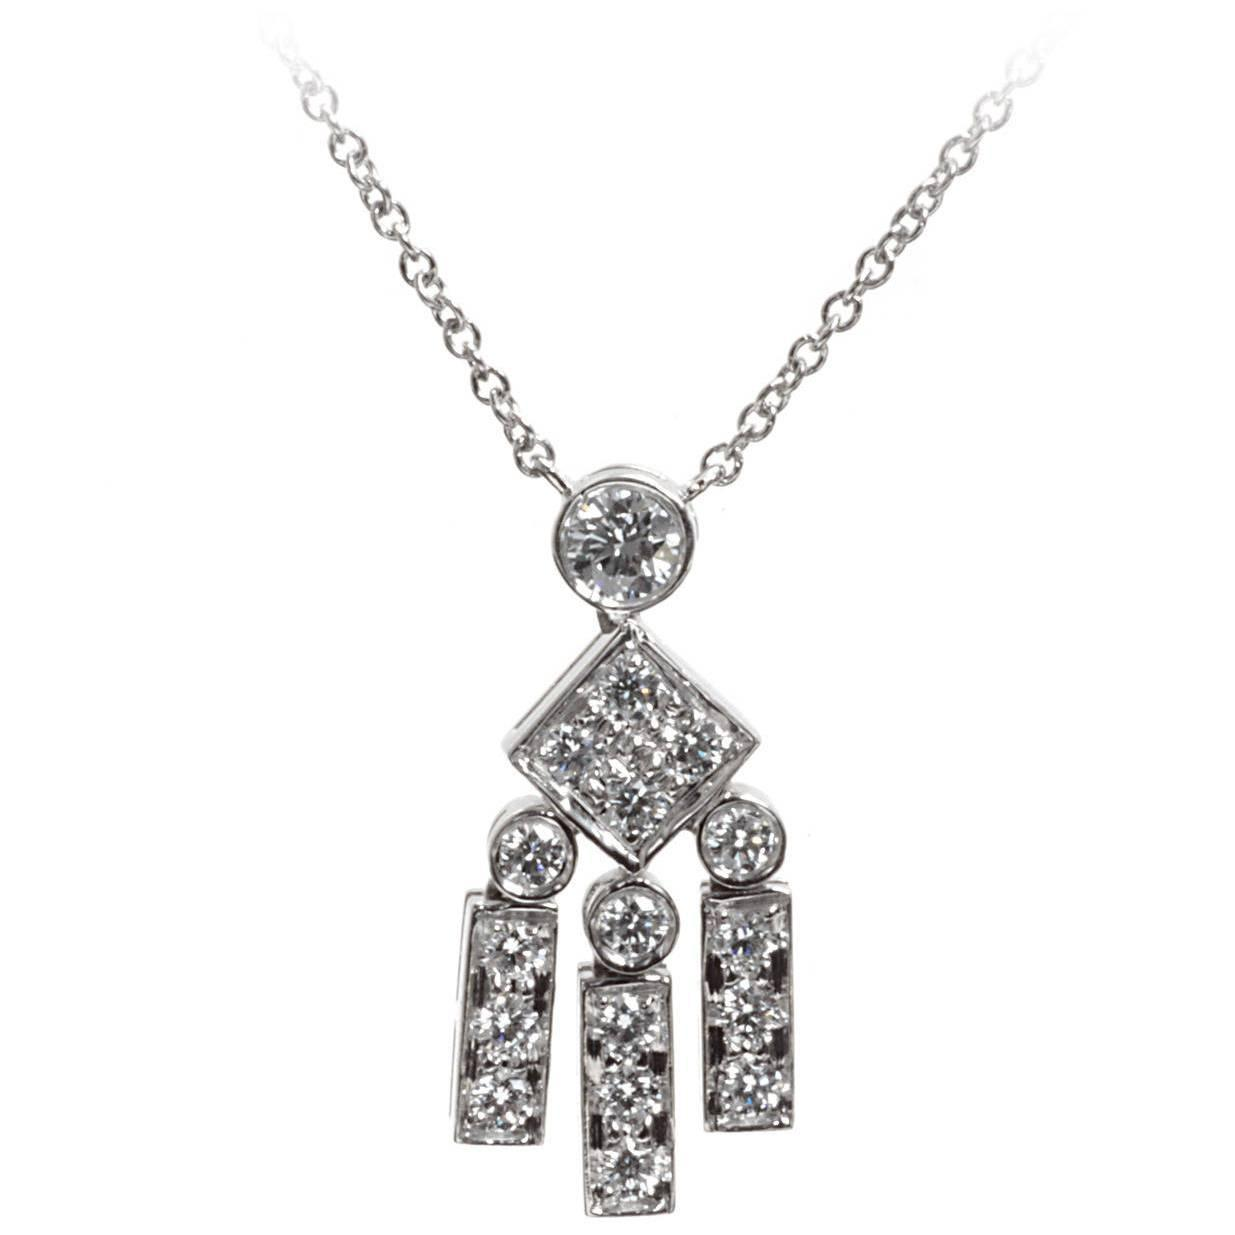 j and co jewelry and co legacy platinum necklace at 1stdibs 7441